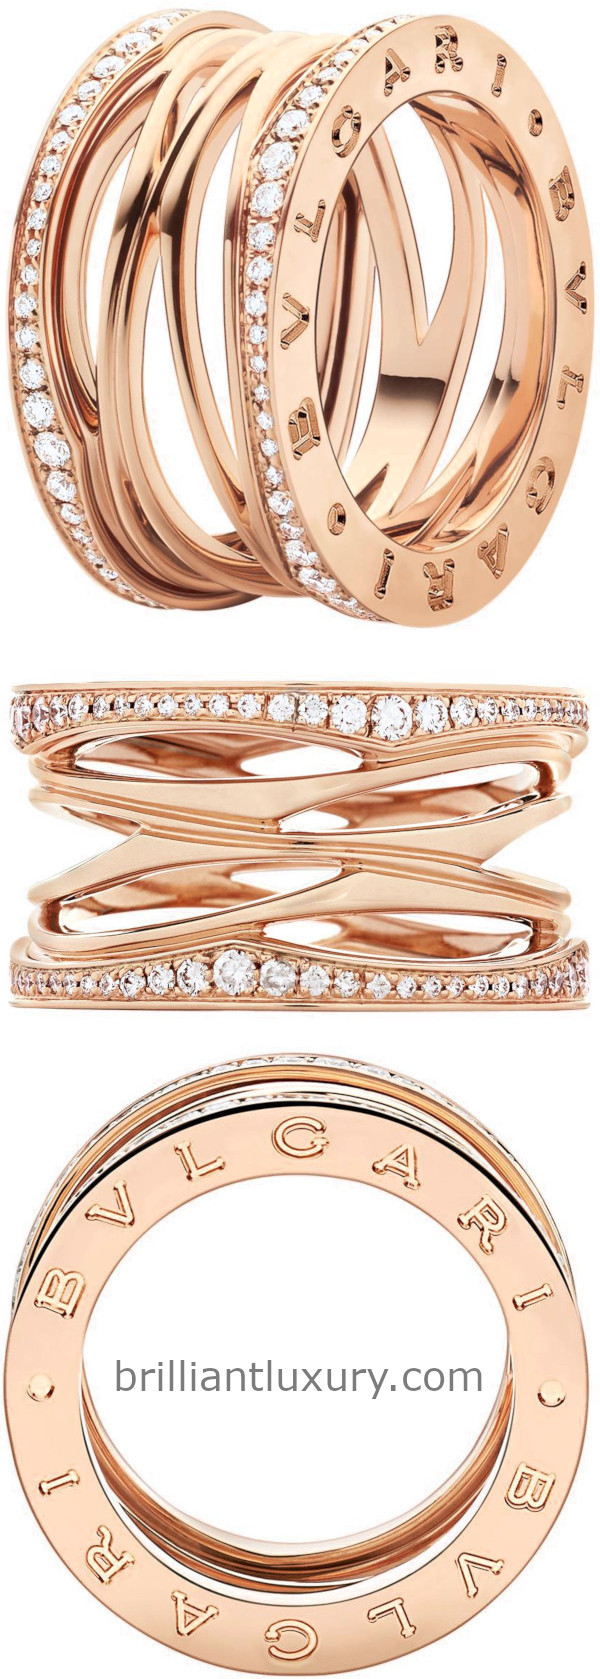 Bvlgari B.Zero1 Design Legend four-band ring in 18kt rose gold set with pavé diamonds on the edges